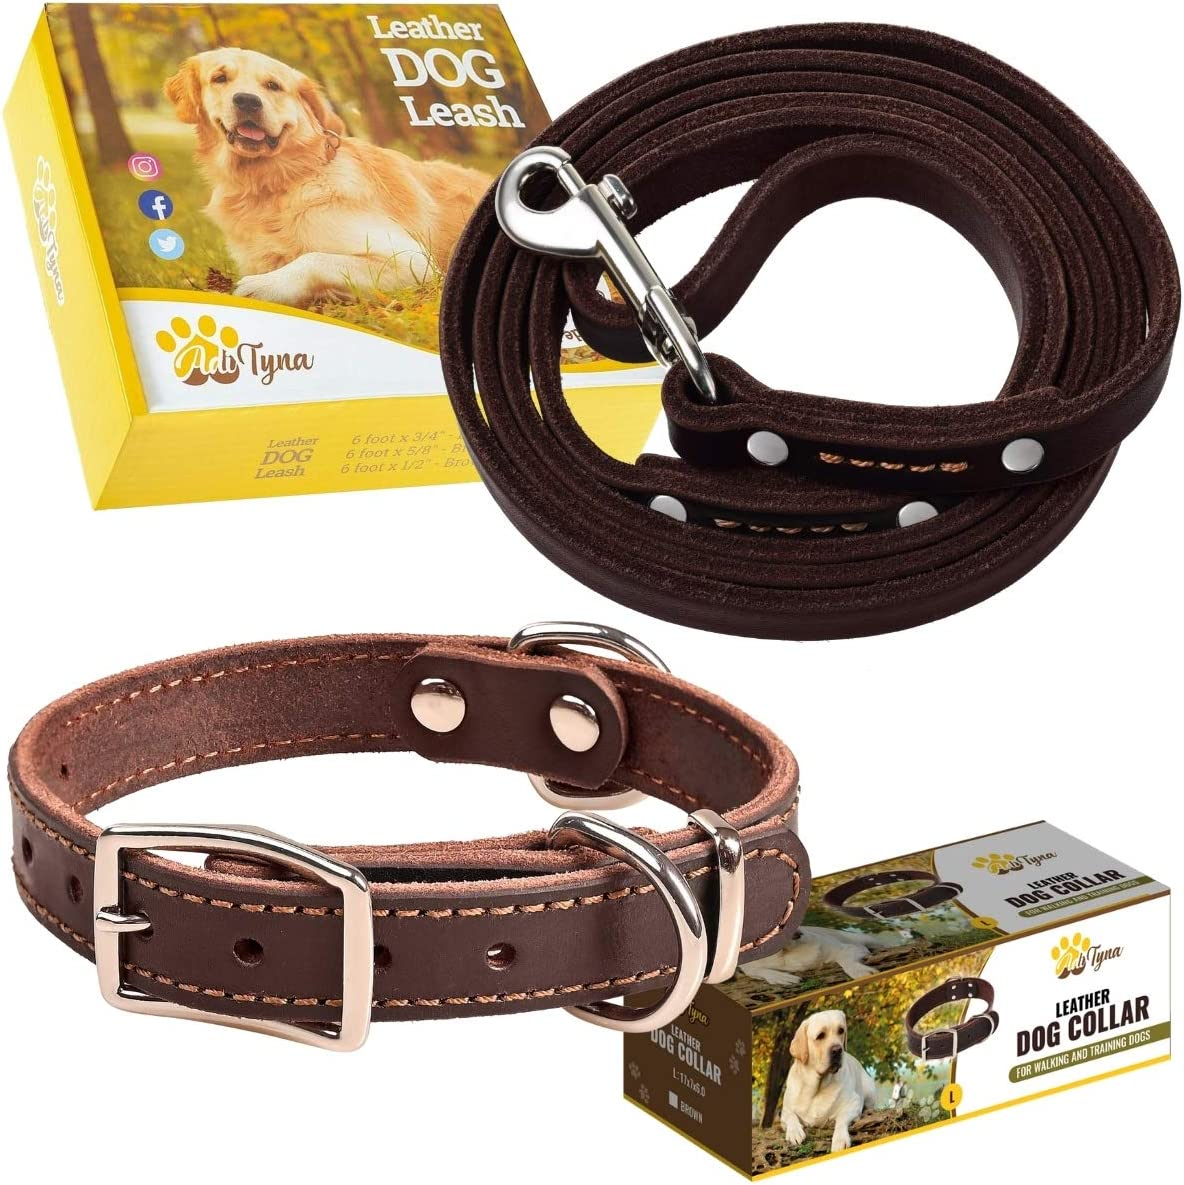 Leather Dog collar and leash set gift for dogs nylon used 4 size and 7 color options